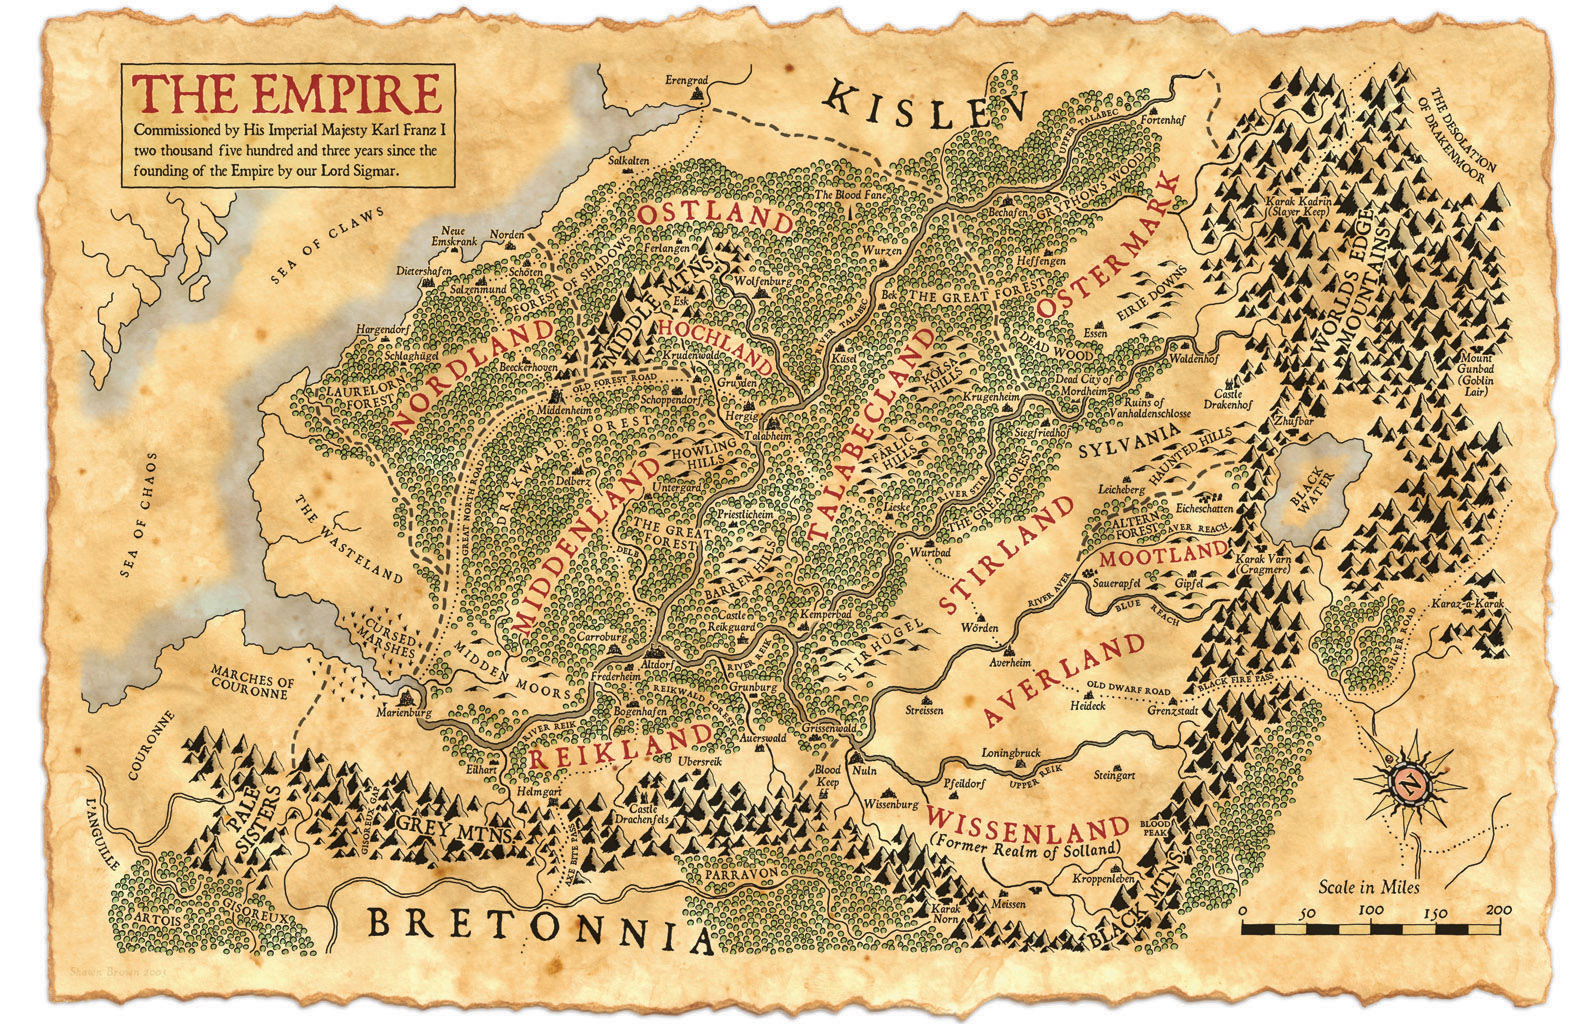 Is there a map of the Wastelands anywhere? What are the two rivers ...